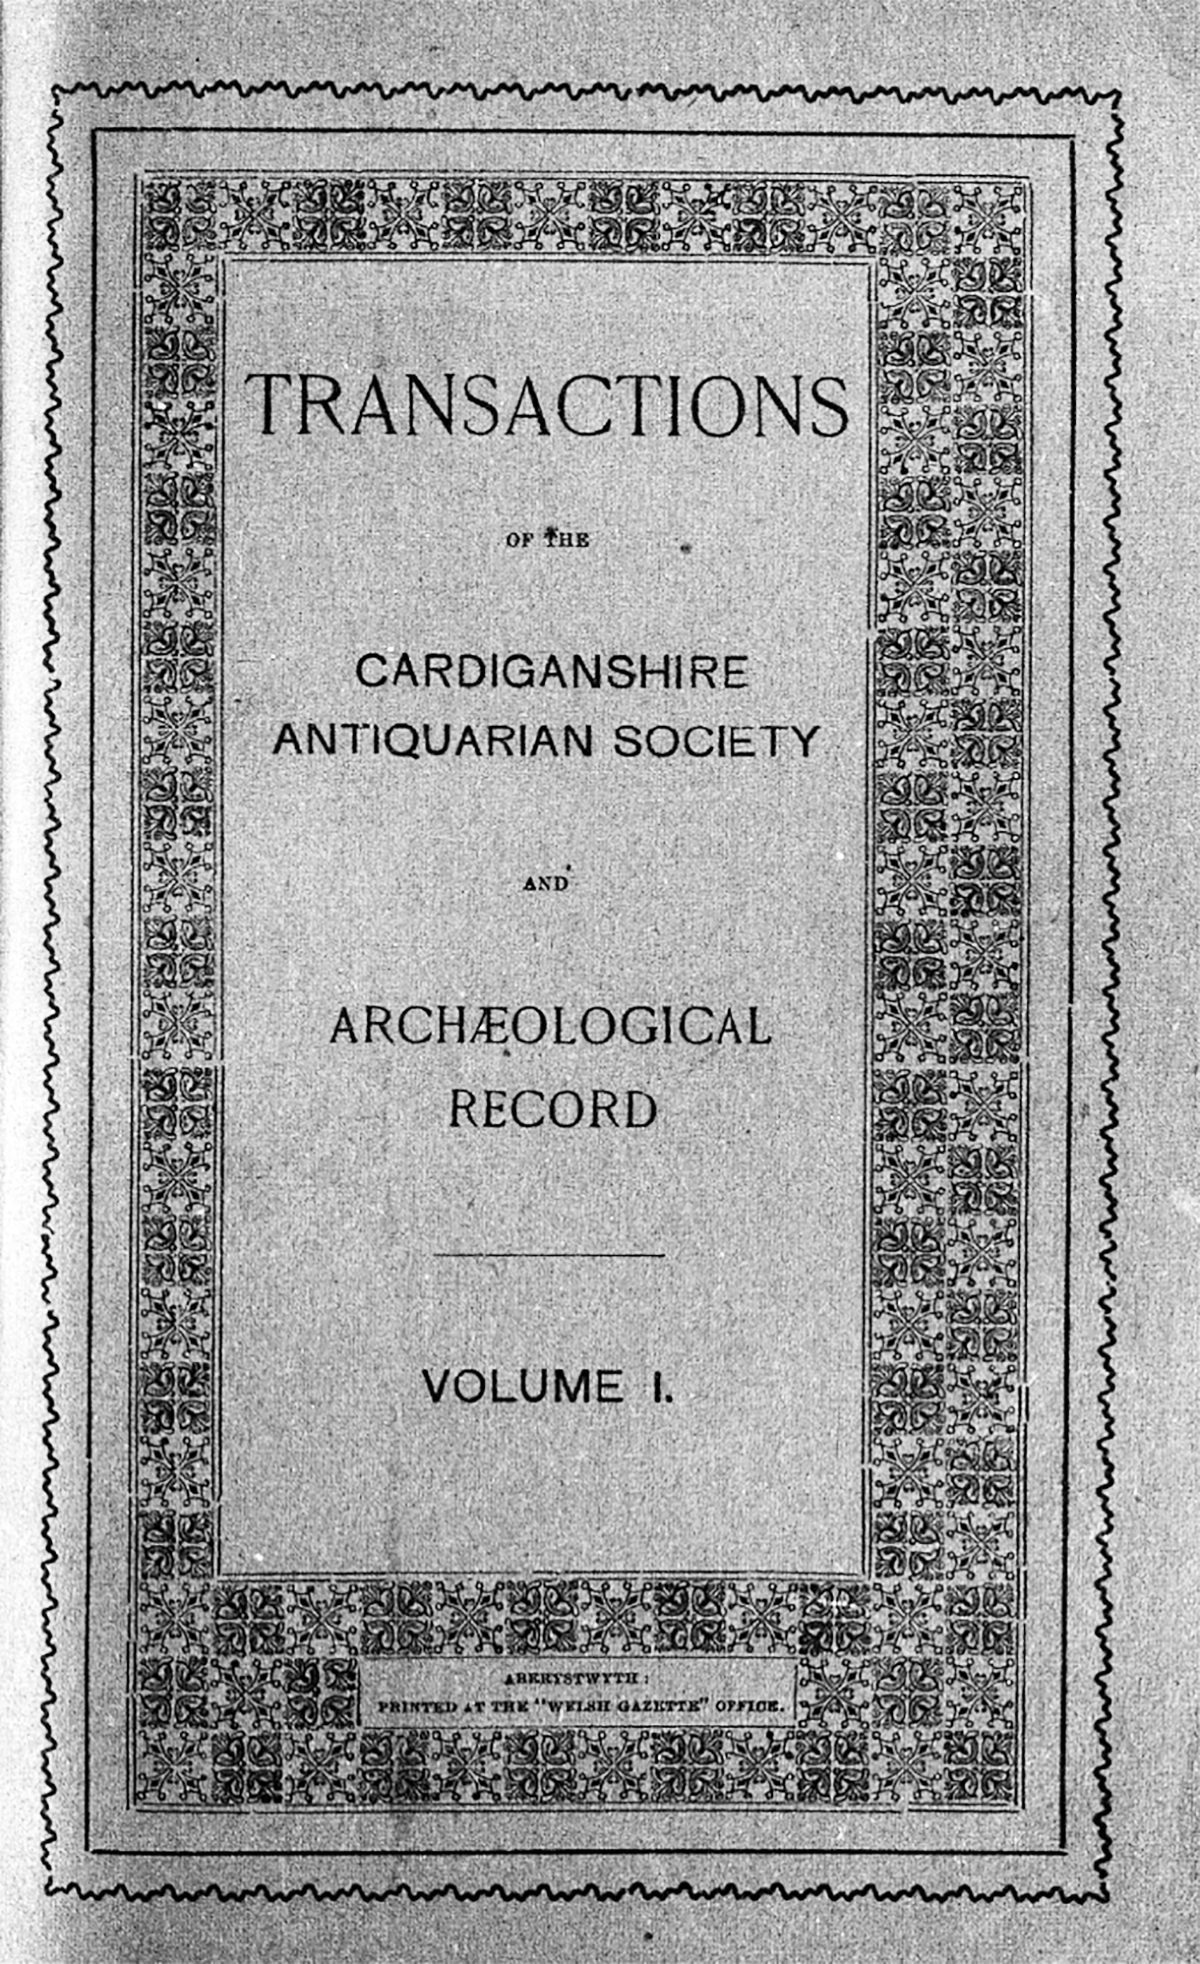 Transactions of the Cardiganshire Antiquarian Society and archaeological Record - Volume 1